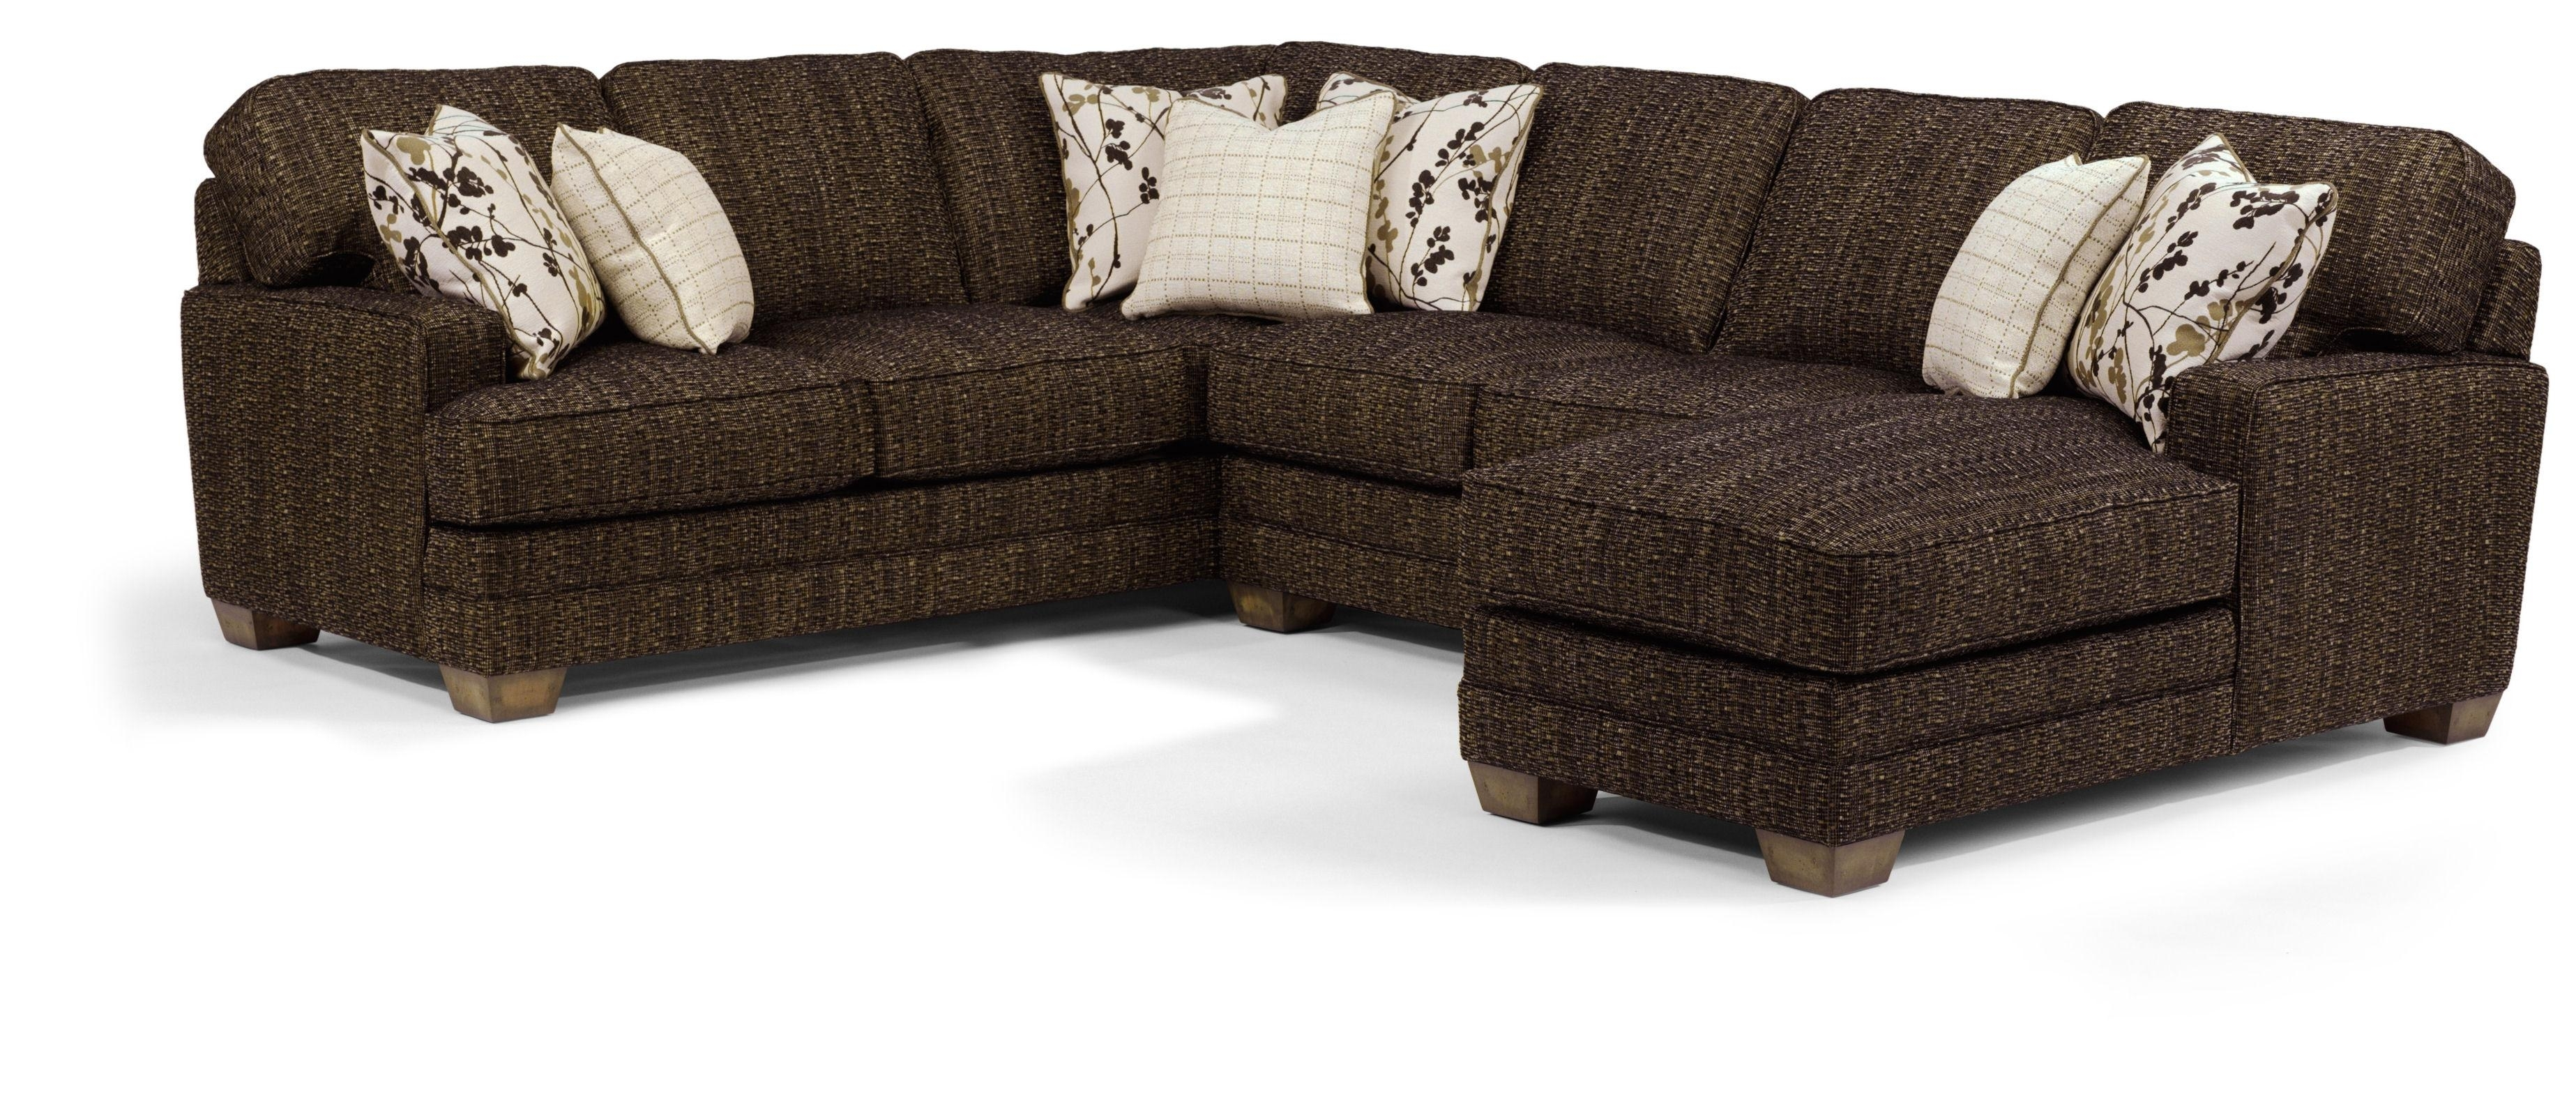 Flexsteel That's My Style <B>Customizable</b> 3 Piece Sectional Sofa For Delano 2 Piece Sectionals With Raf Oversized Chaise (Image 17 of 25)